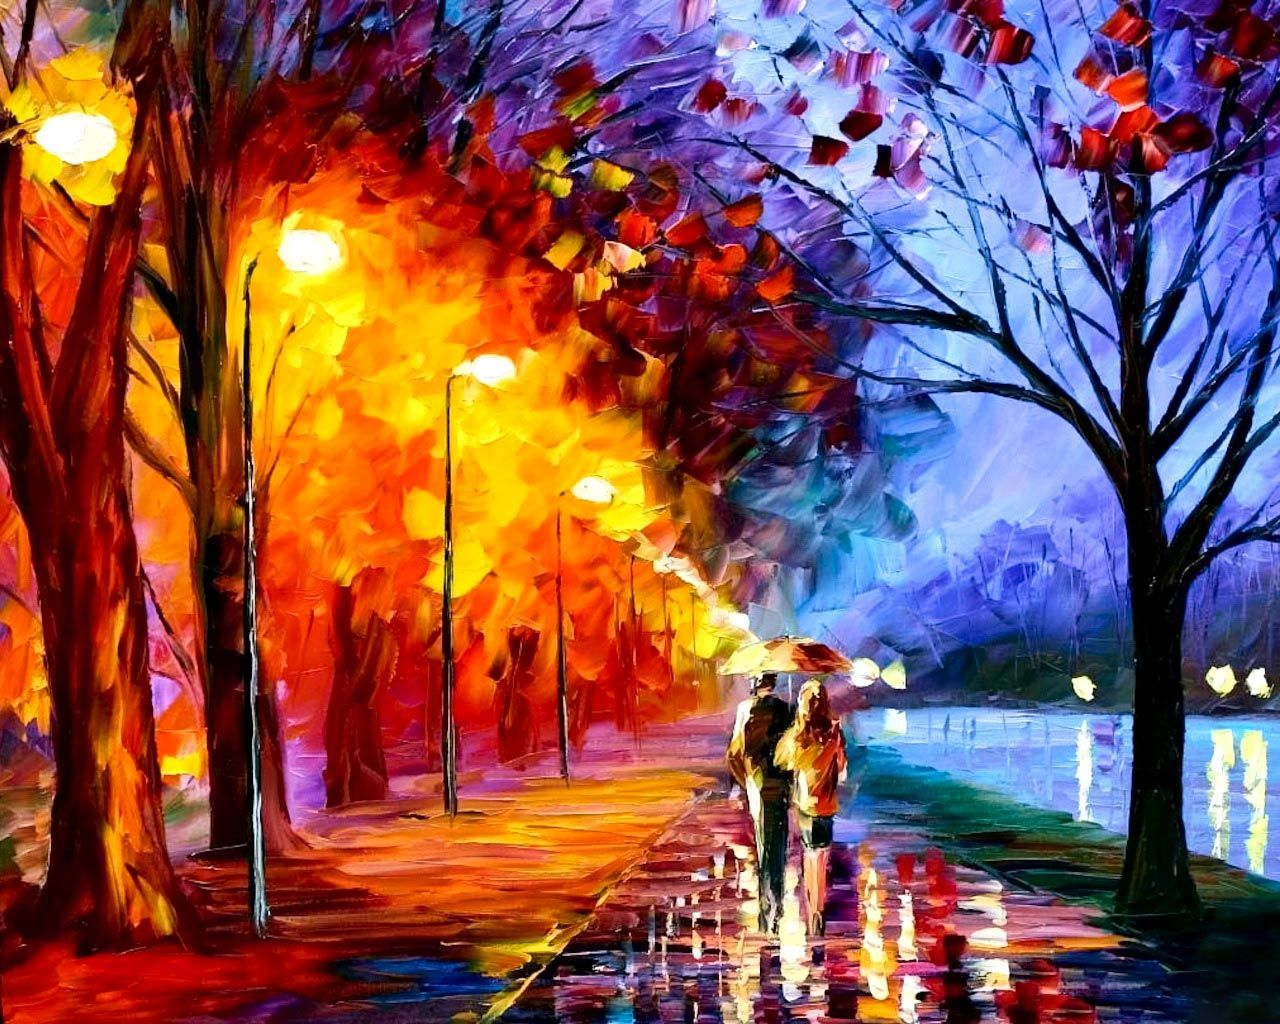 Autumn Oil Painting Wallpaper | High Quality Wallpapers,Wallpaper  Desktop,High Definition Wallpapers FREE